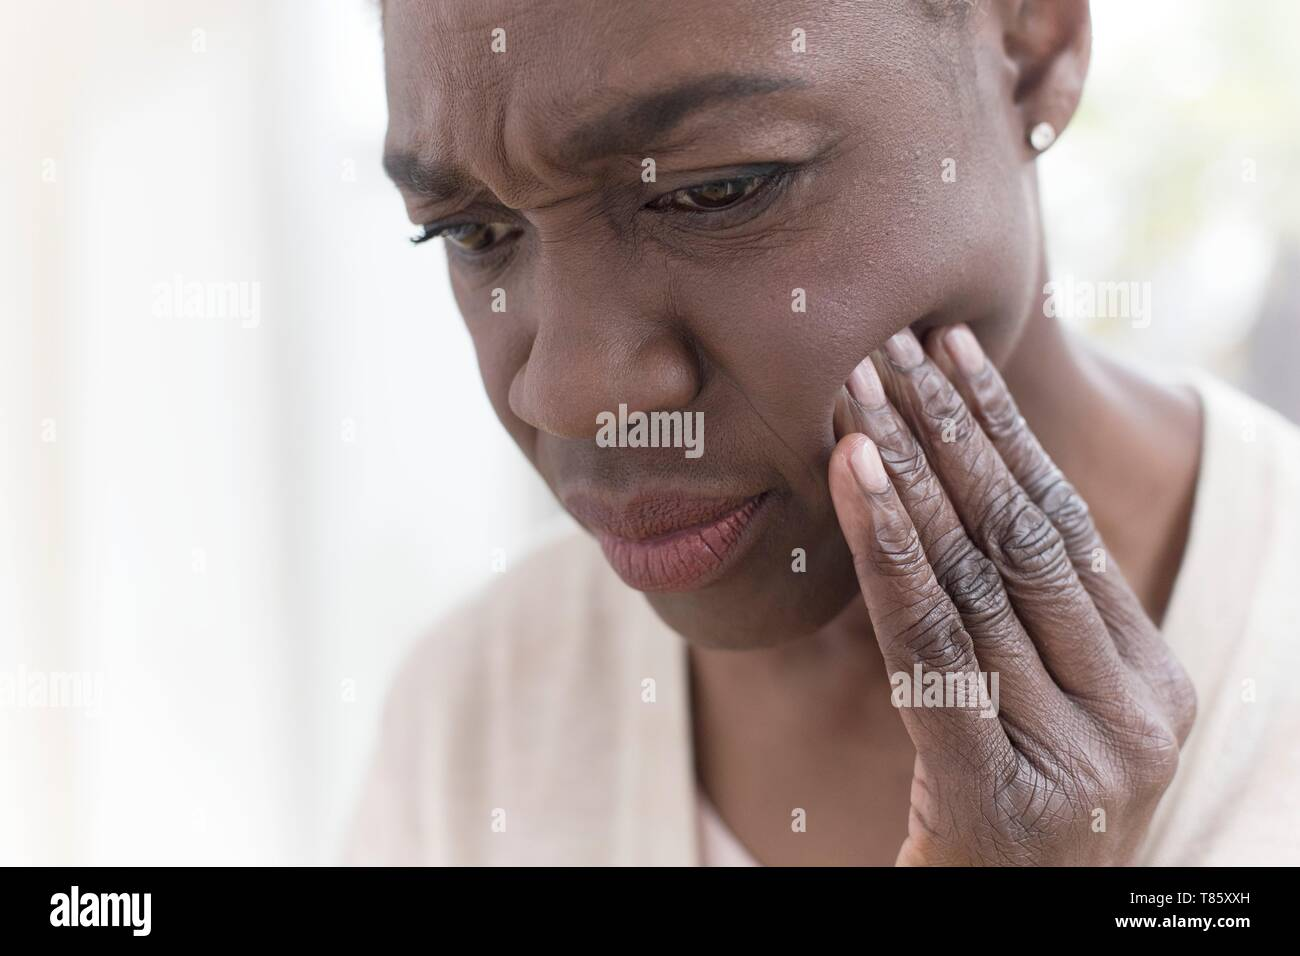 Woman with tooth ache - Stock Image